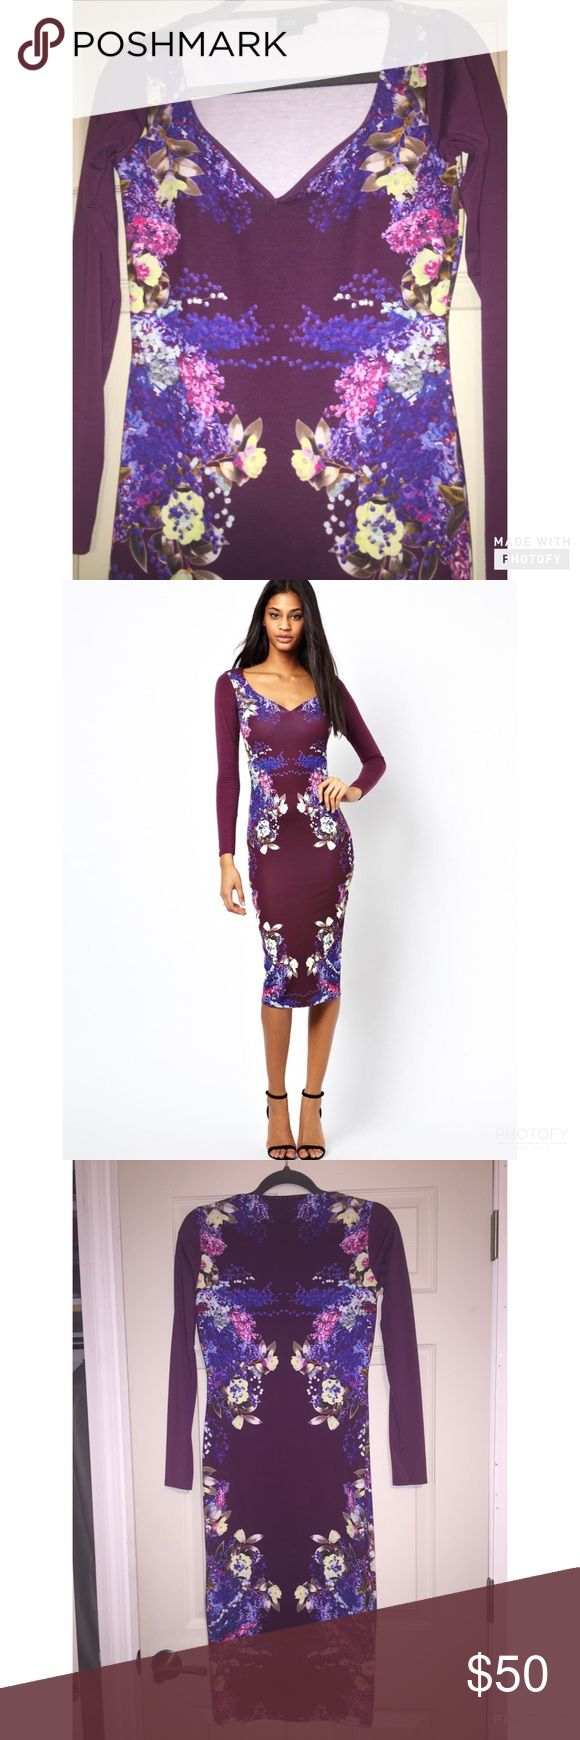 ASOS size 6 Purple Floral midi dress Fitted size 6 but fit me as a size 4. Worn only once great condition and already dry cleaned. ASOS Dresses Midi